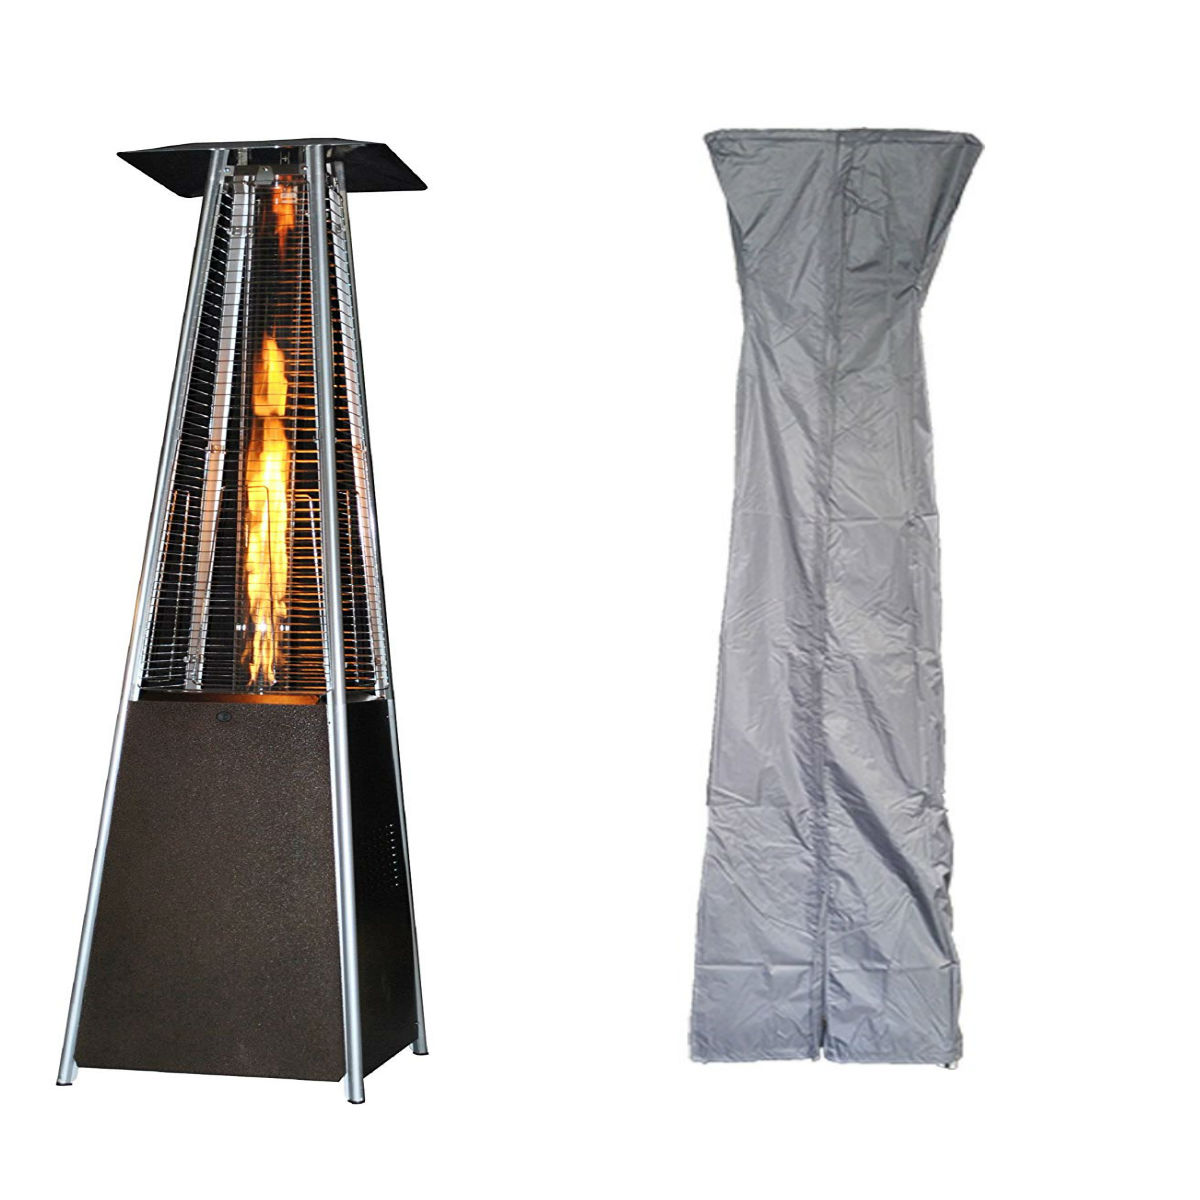 sunheat international contemporary square design portable propane patio heater golden hammered with square patio heater cover